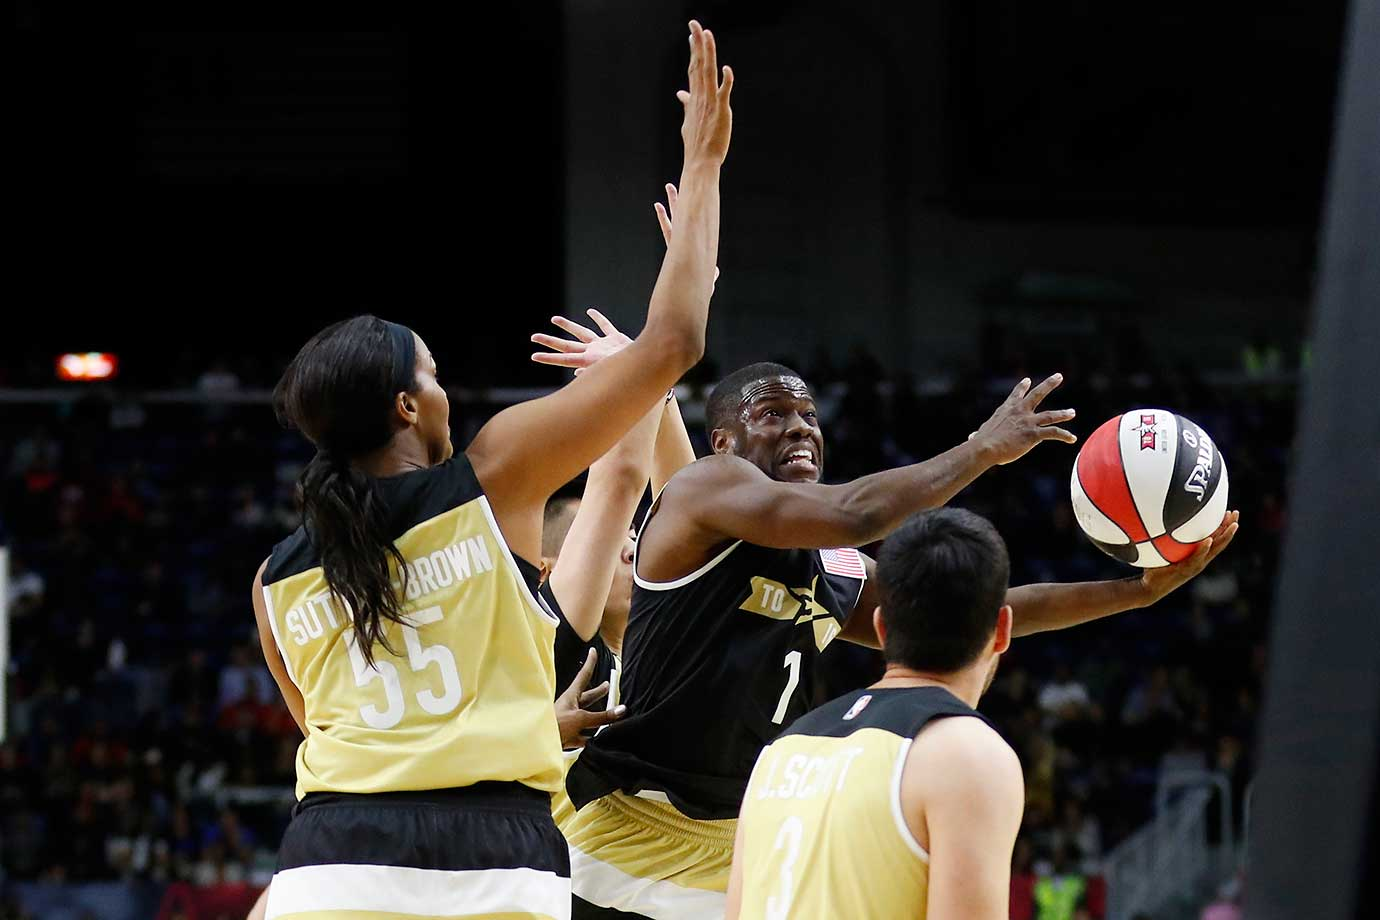 Comedian Kevin Hart goes up for a shot against Team Canada during the annual celebrity game at NBA All-Star weekend in Toronto.